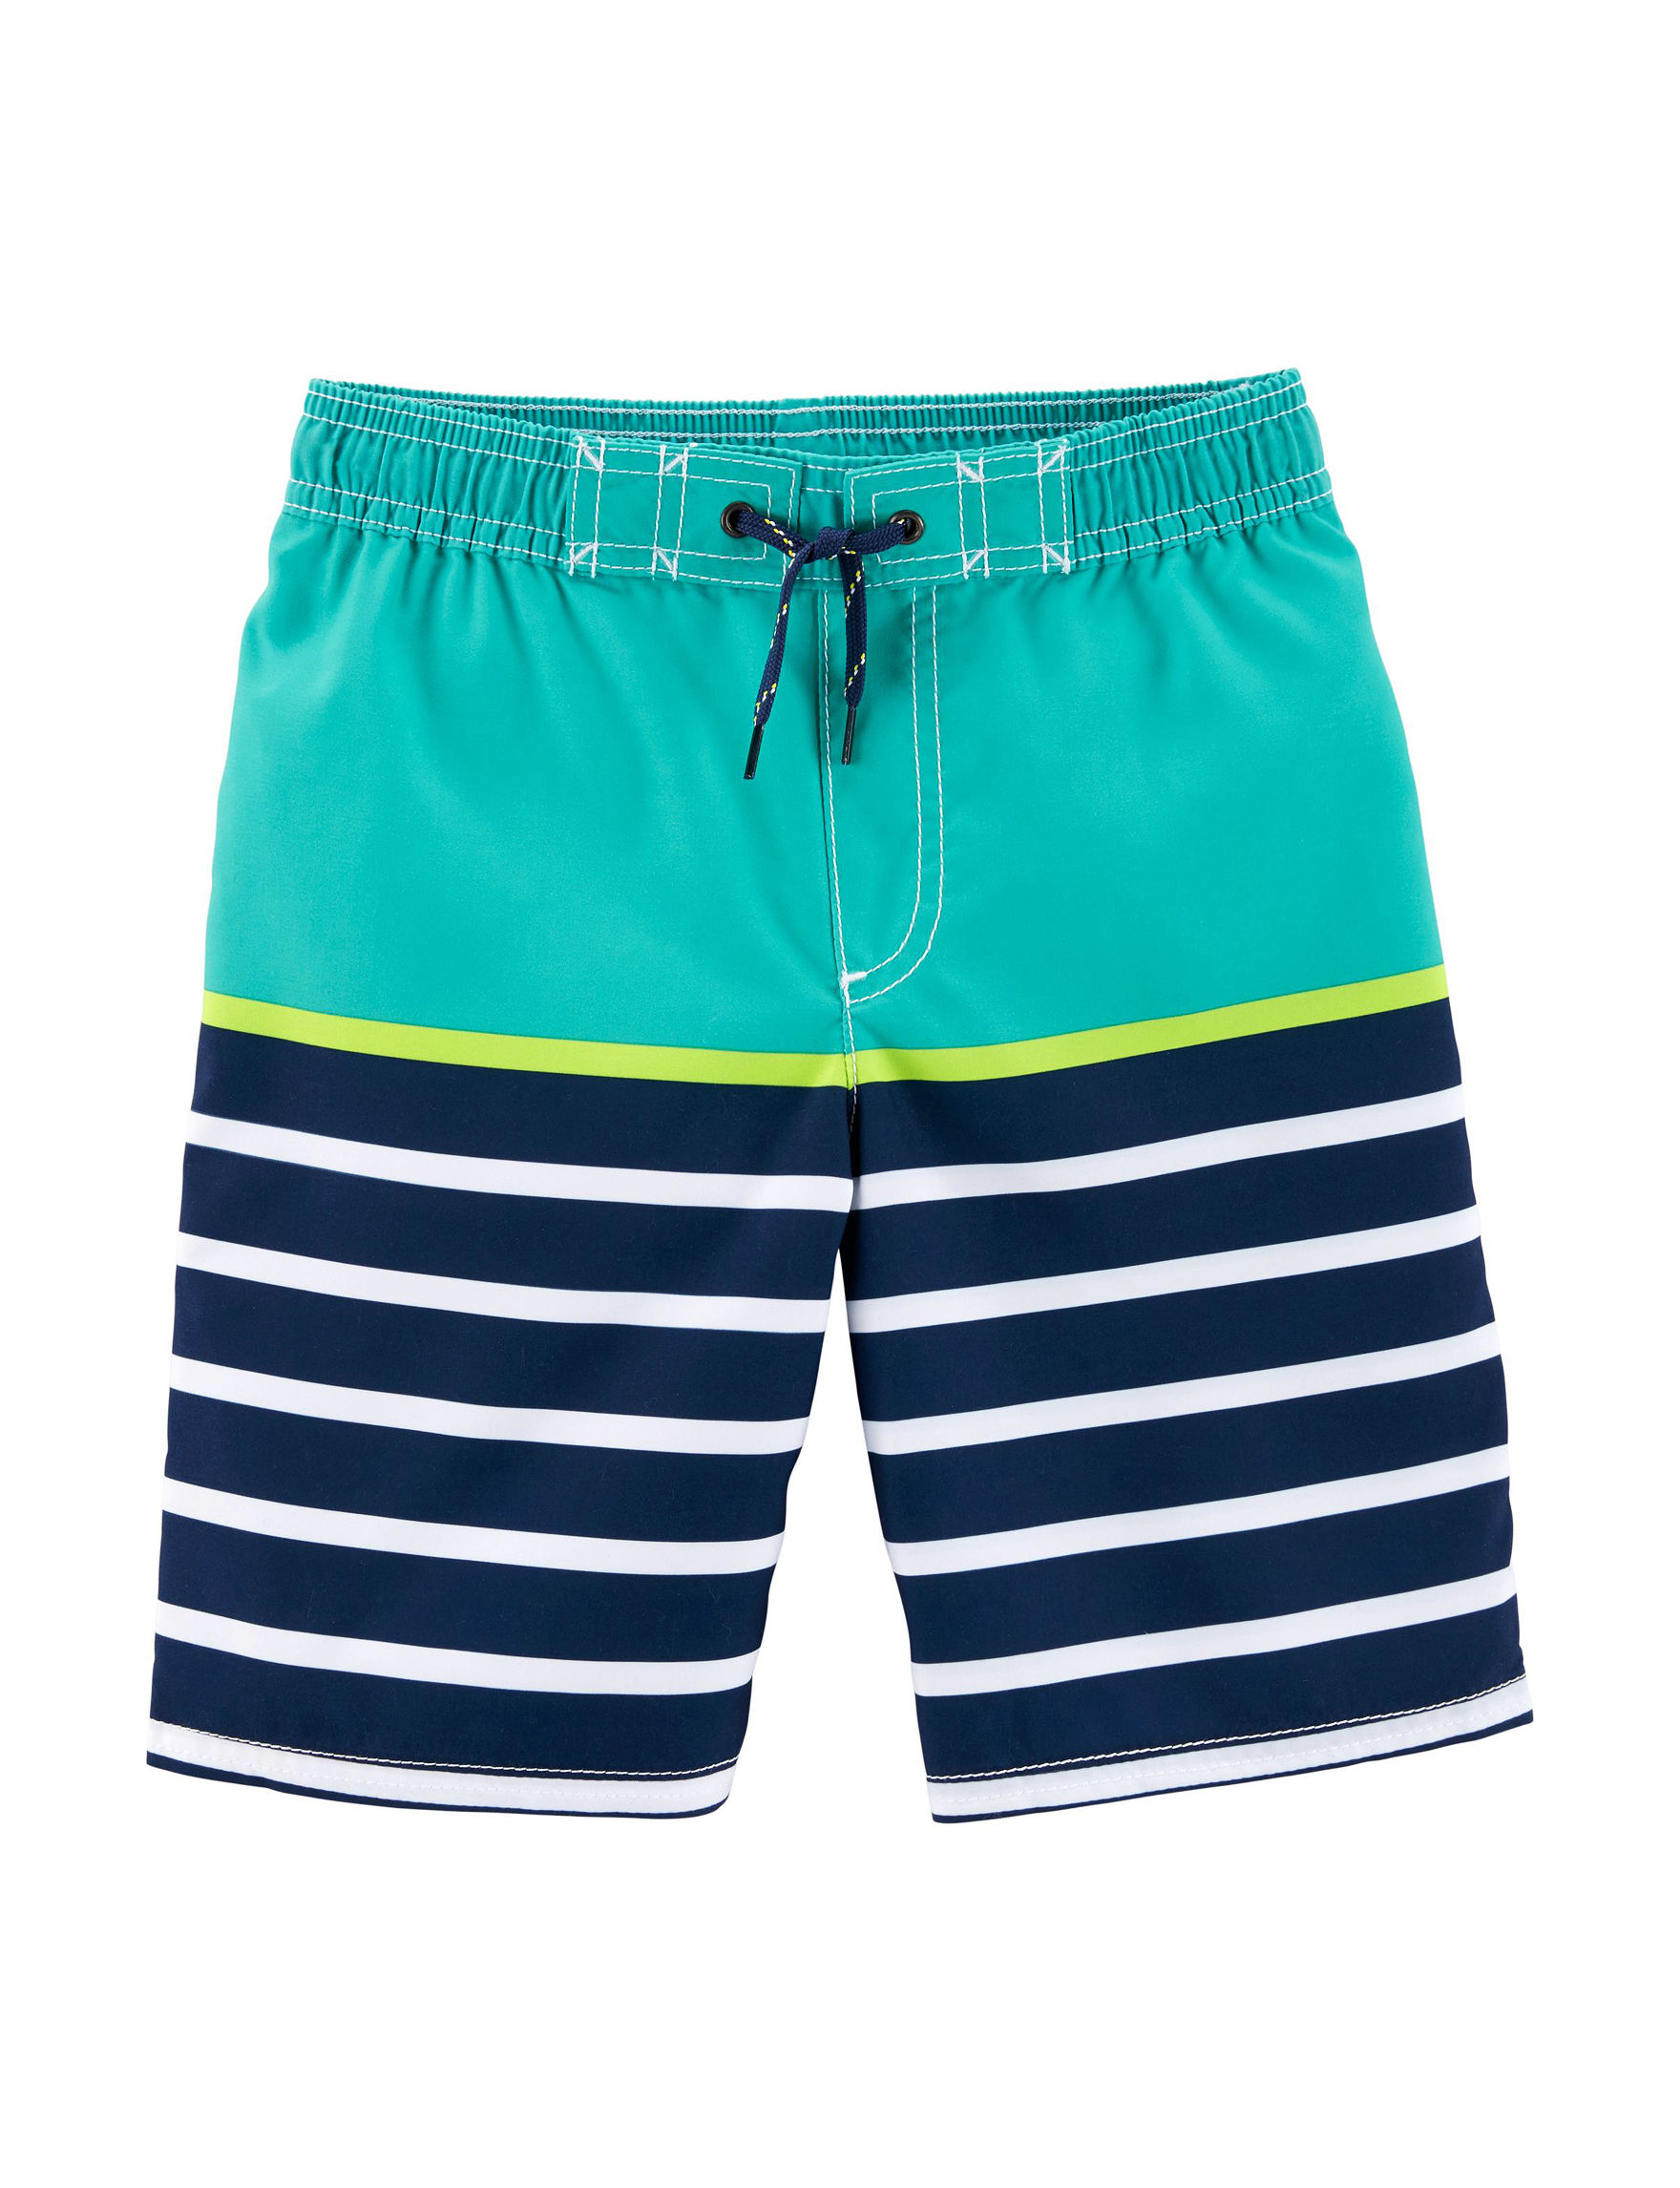 Carter's Turquoise / Navy Swimsuit Bottoms